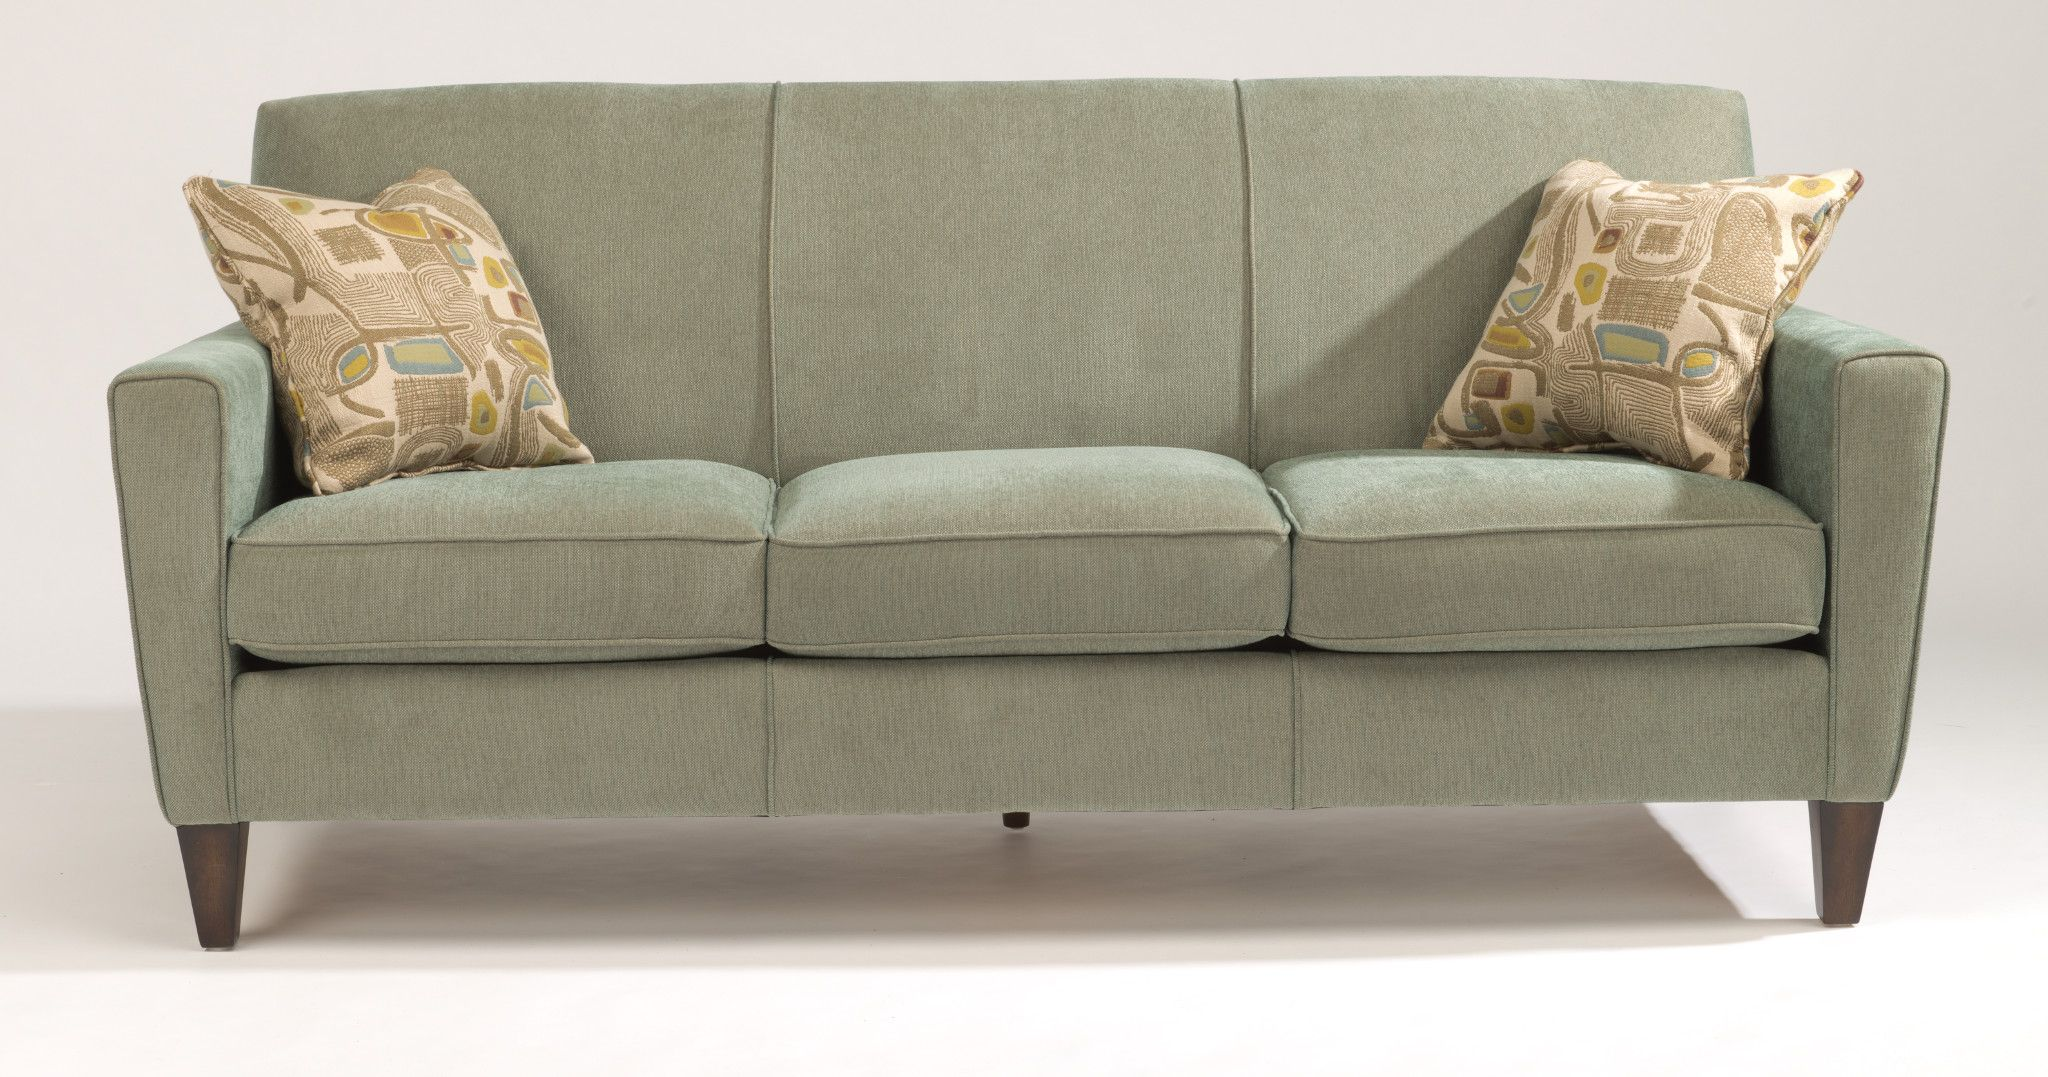 Brilliant The Digby Sofa By Flexsteel Furniture Available In Hundreds Gmtry Best Dining Table And Chair Ideas Images Gmtryco